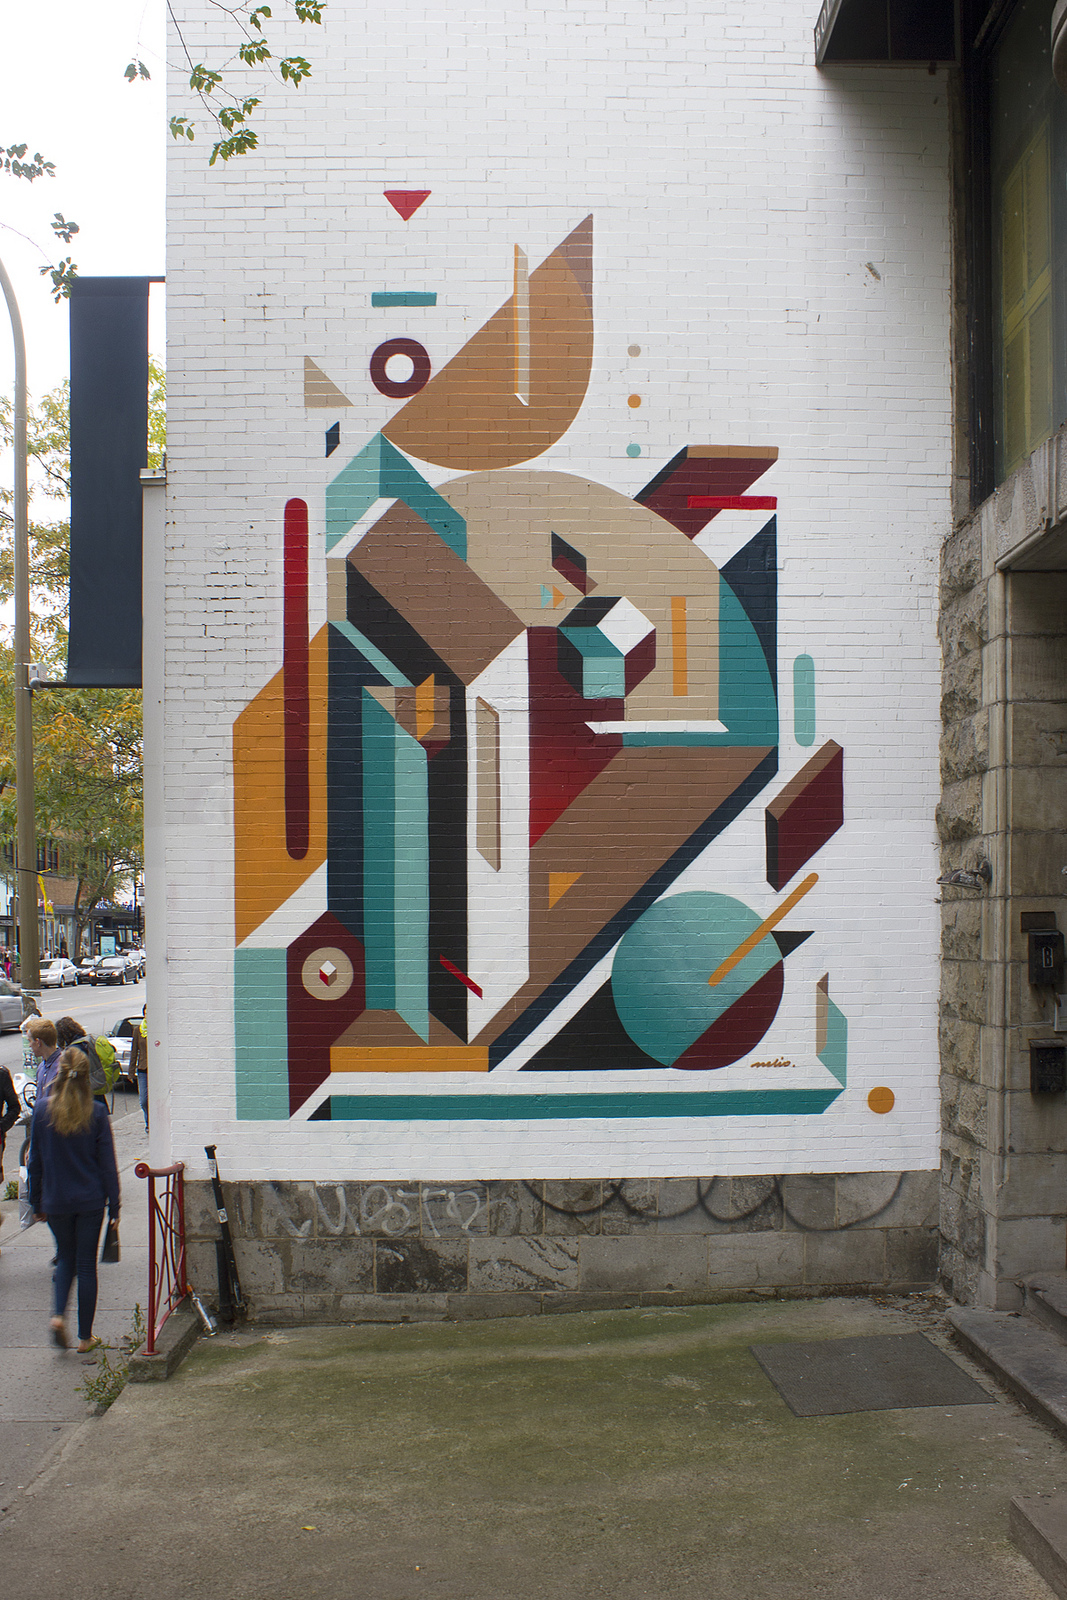 nelio-a-series-of-new-pieces-in-montreal-02